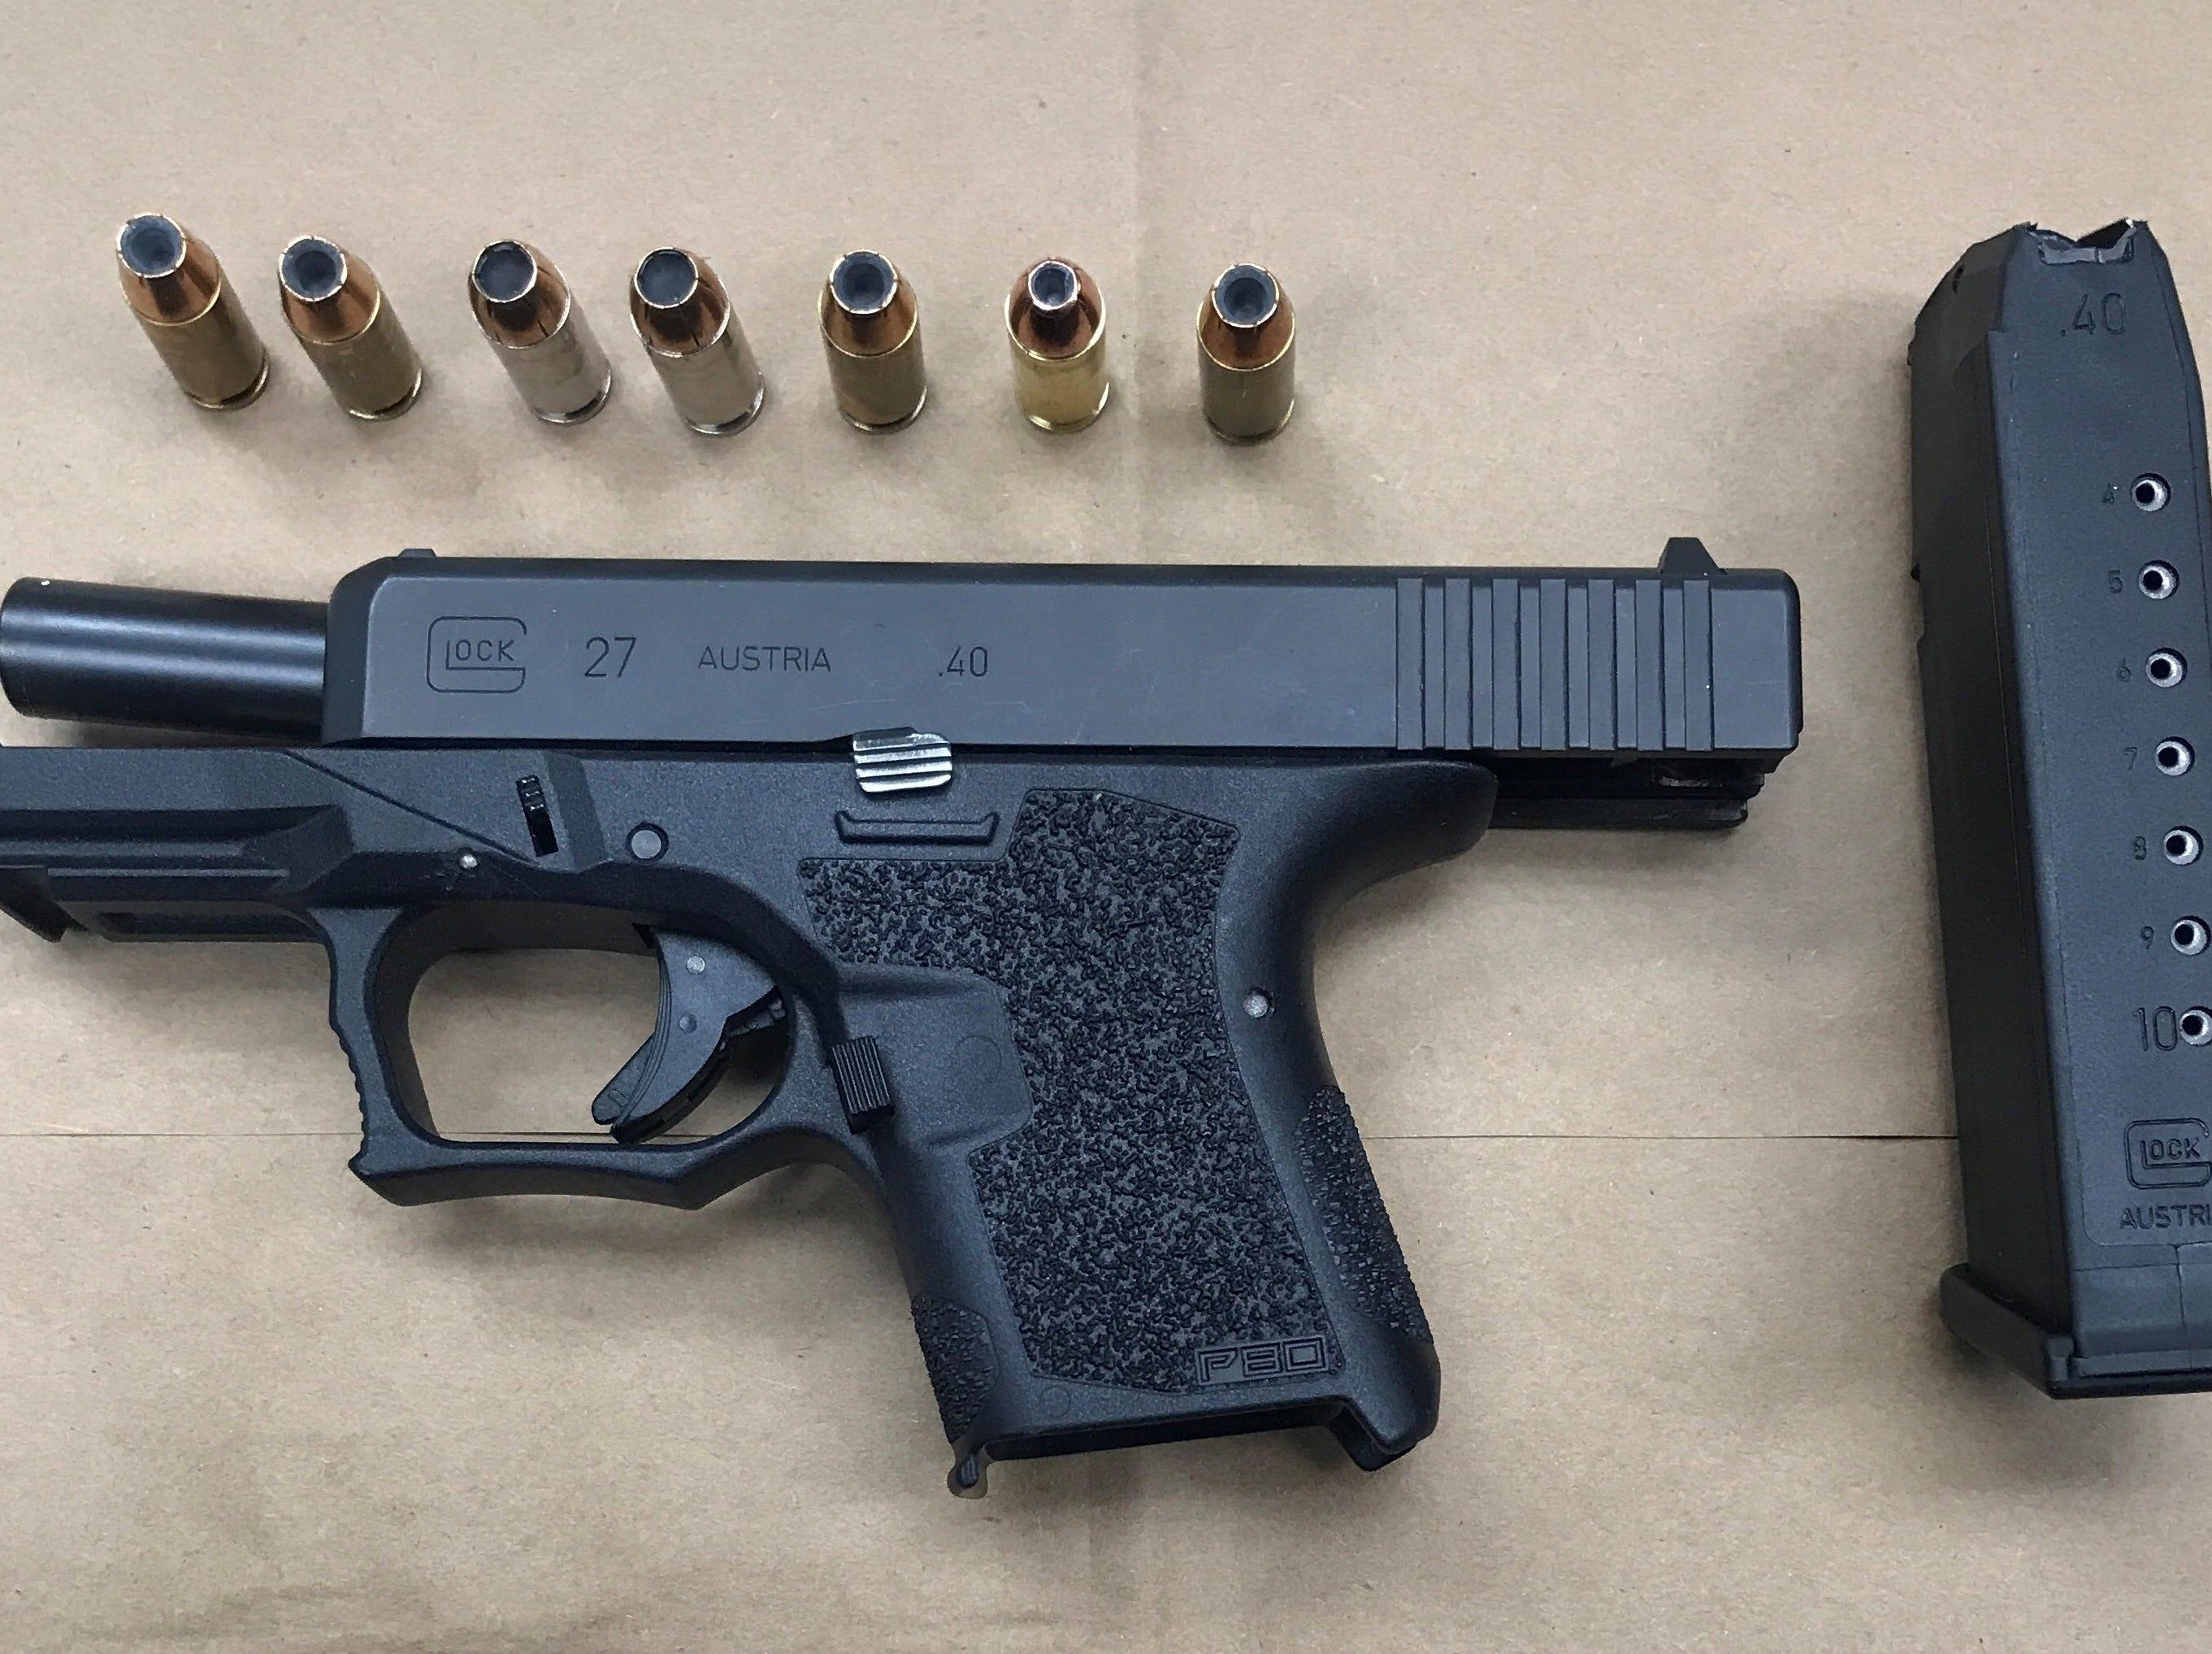 This firearm was recovered during a Wednesday evening search by Oxnard police.